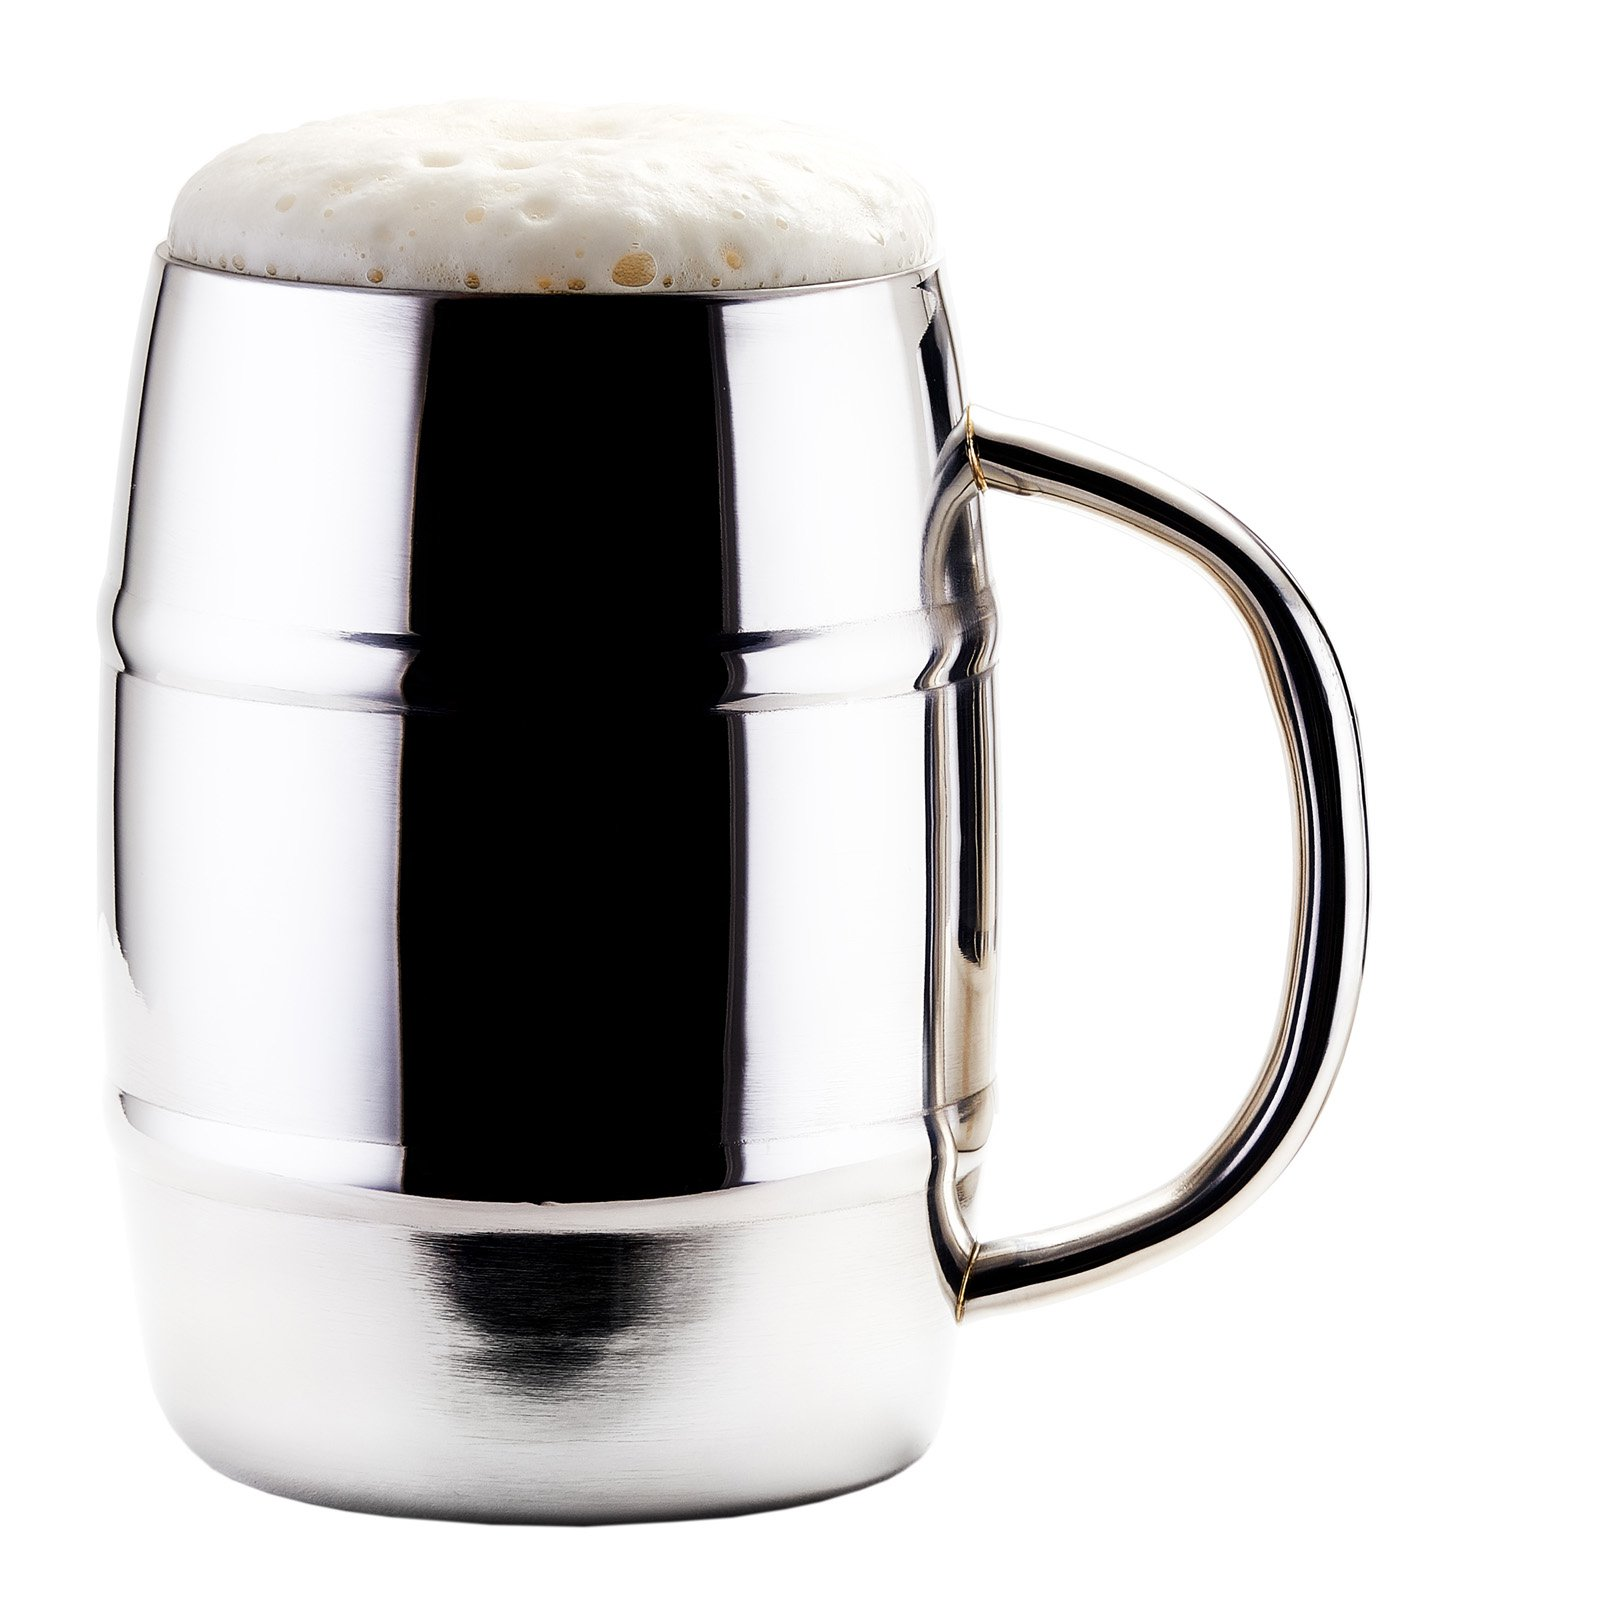 Old Dutch International KeepKool 33.8 oz. Stainless Steel Mug - Set of 2